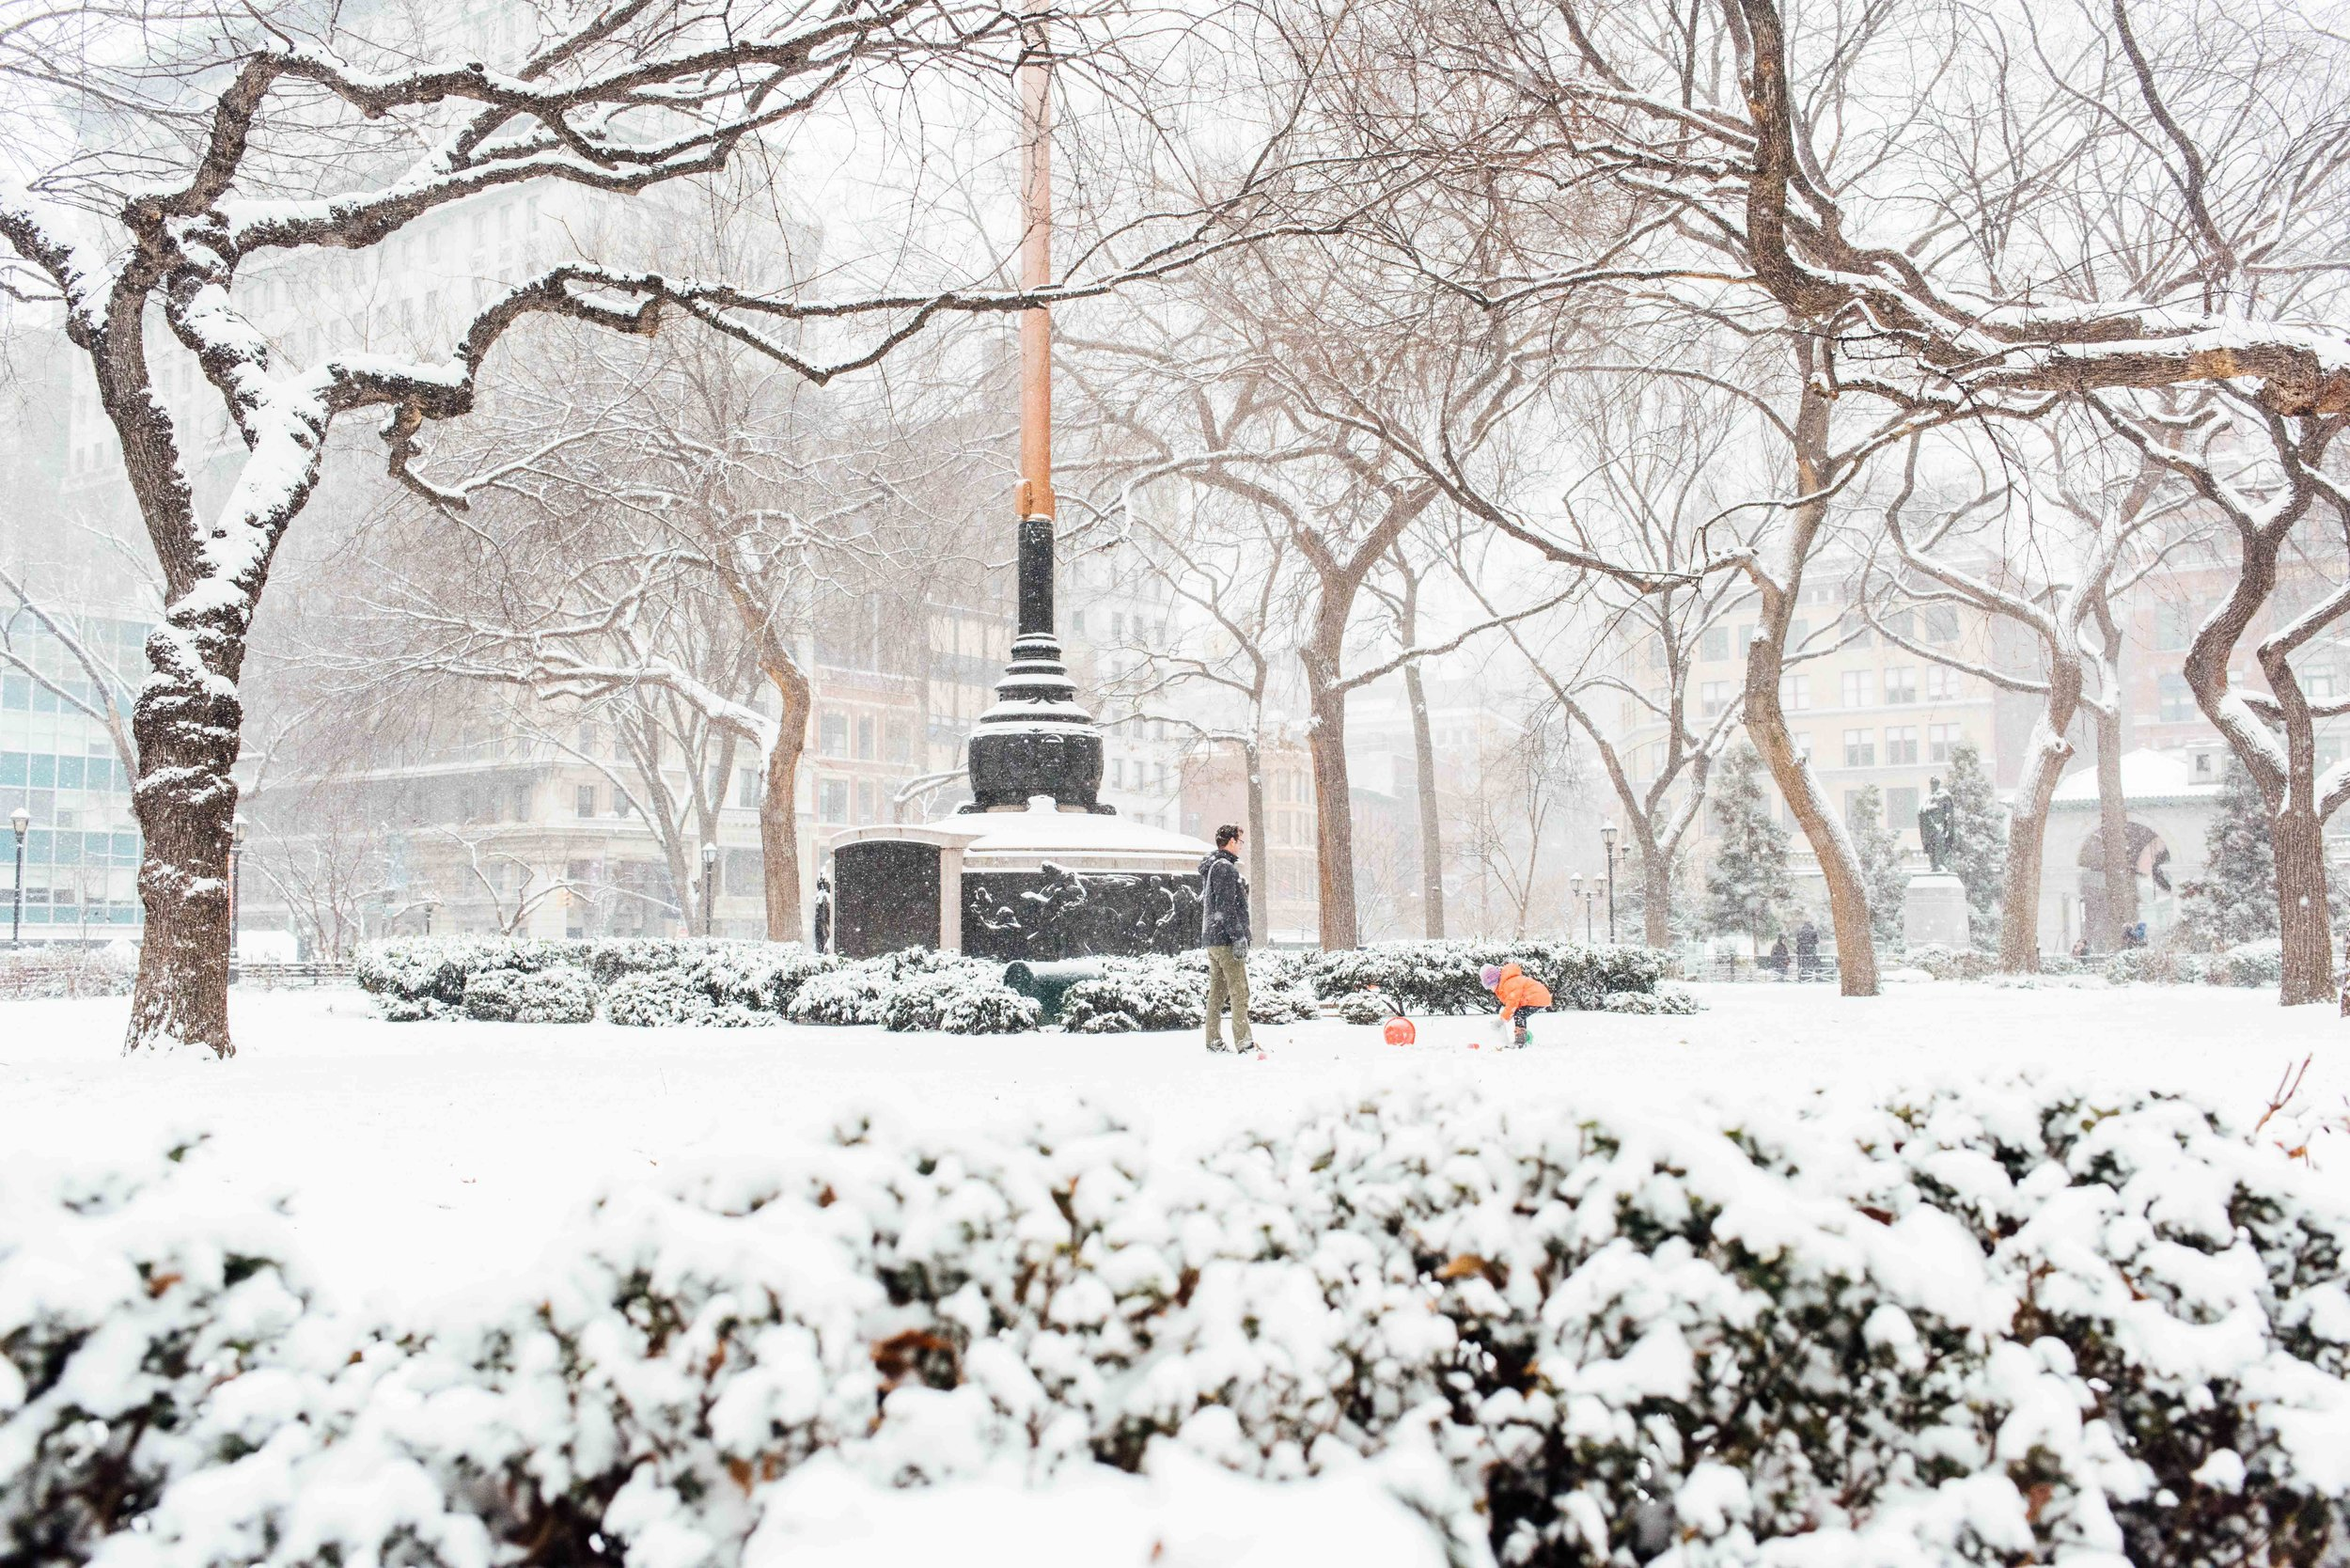 Union Square Park in the Snow Photo by Jack Cohen